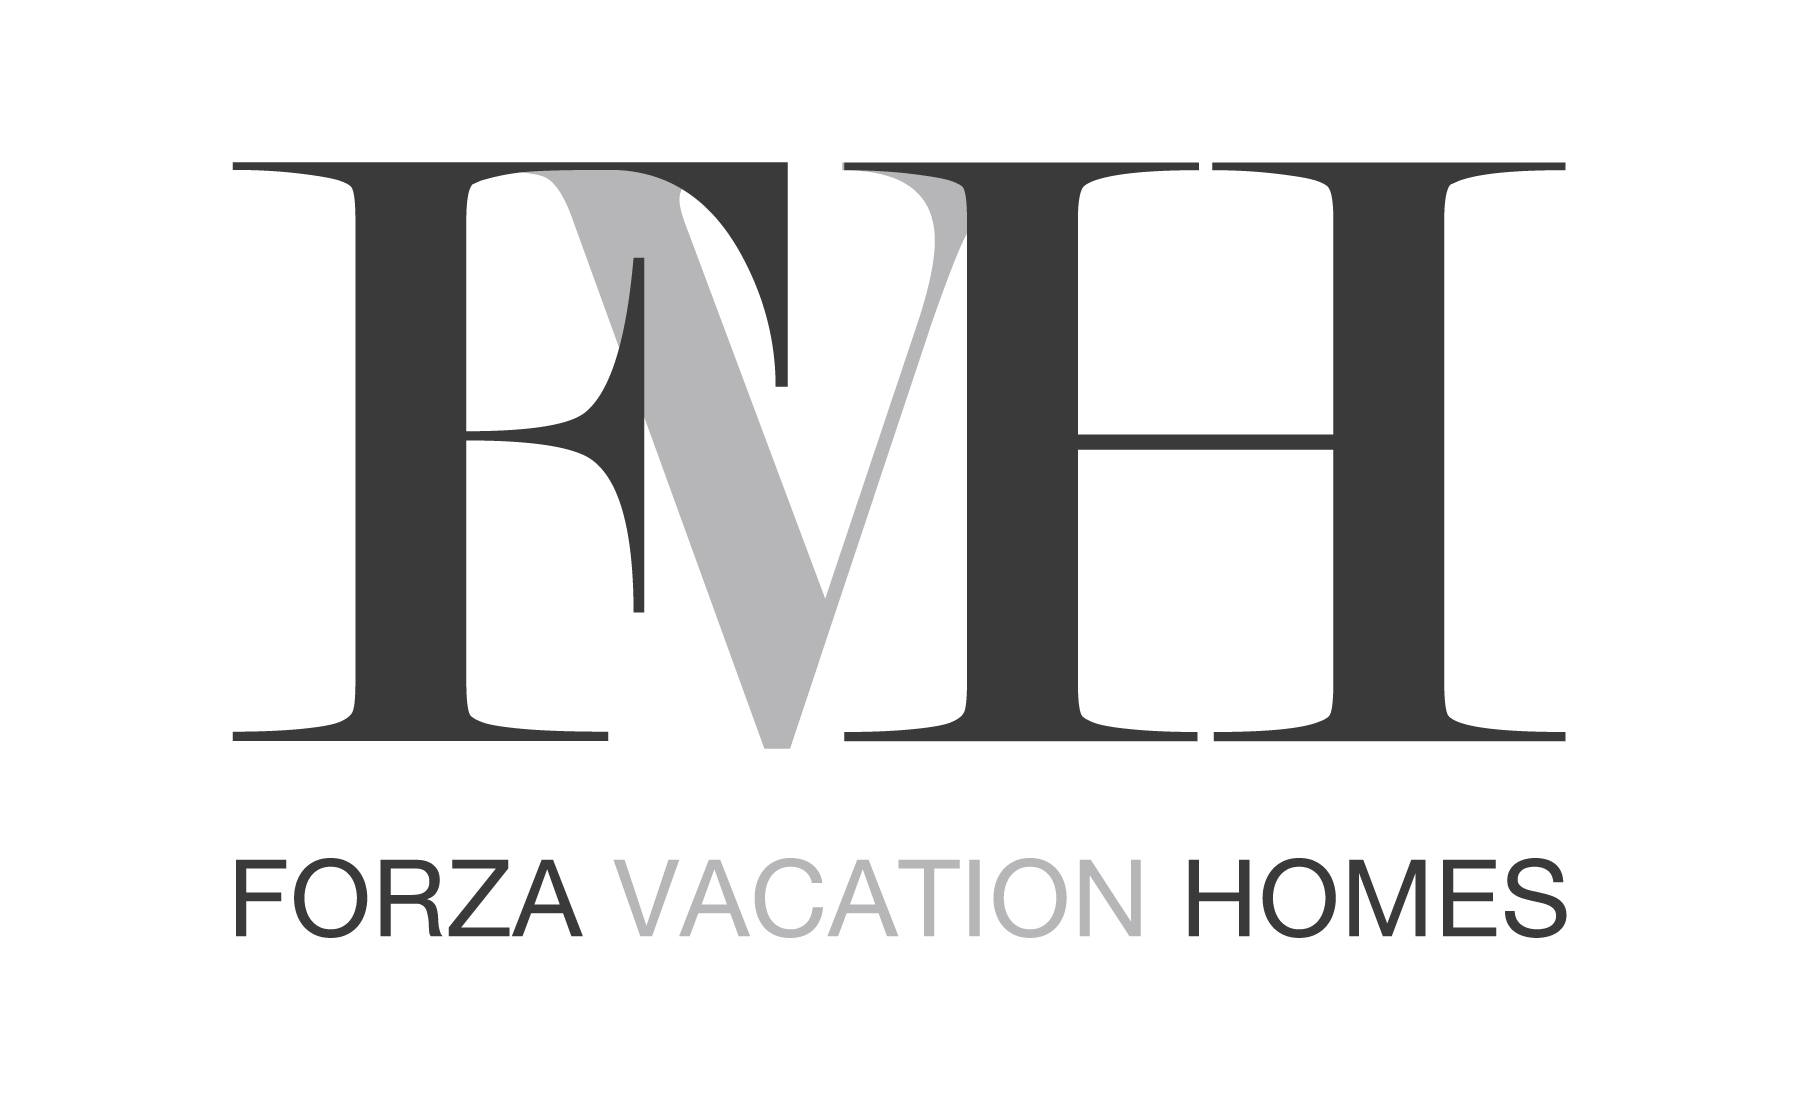 Forza-Vacation-LOGO